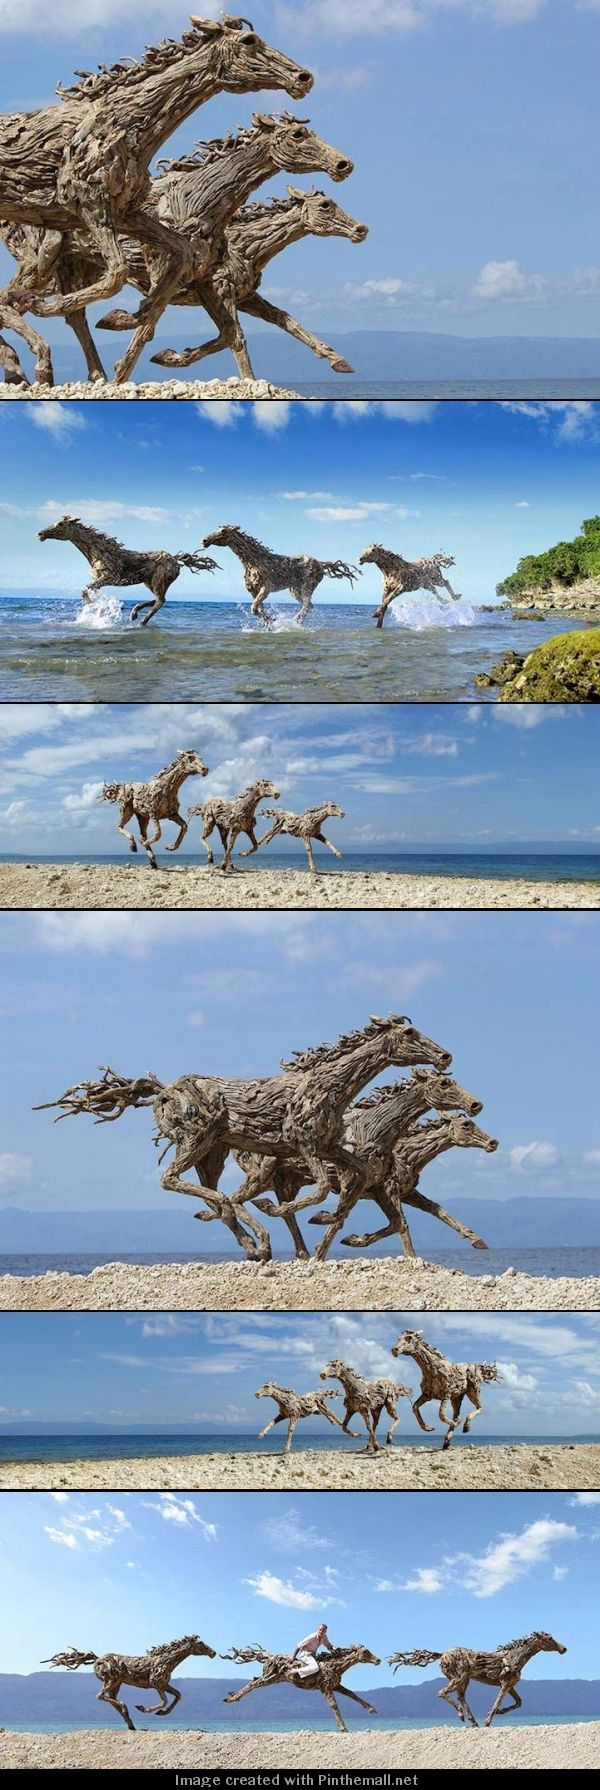 British-born James Doran-Webb created these incredible life-size horses out of salvaged driftwood. - created via http://pinthemall.net